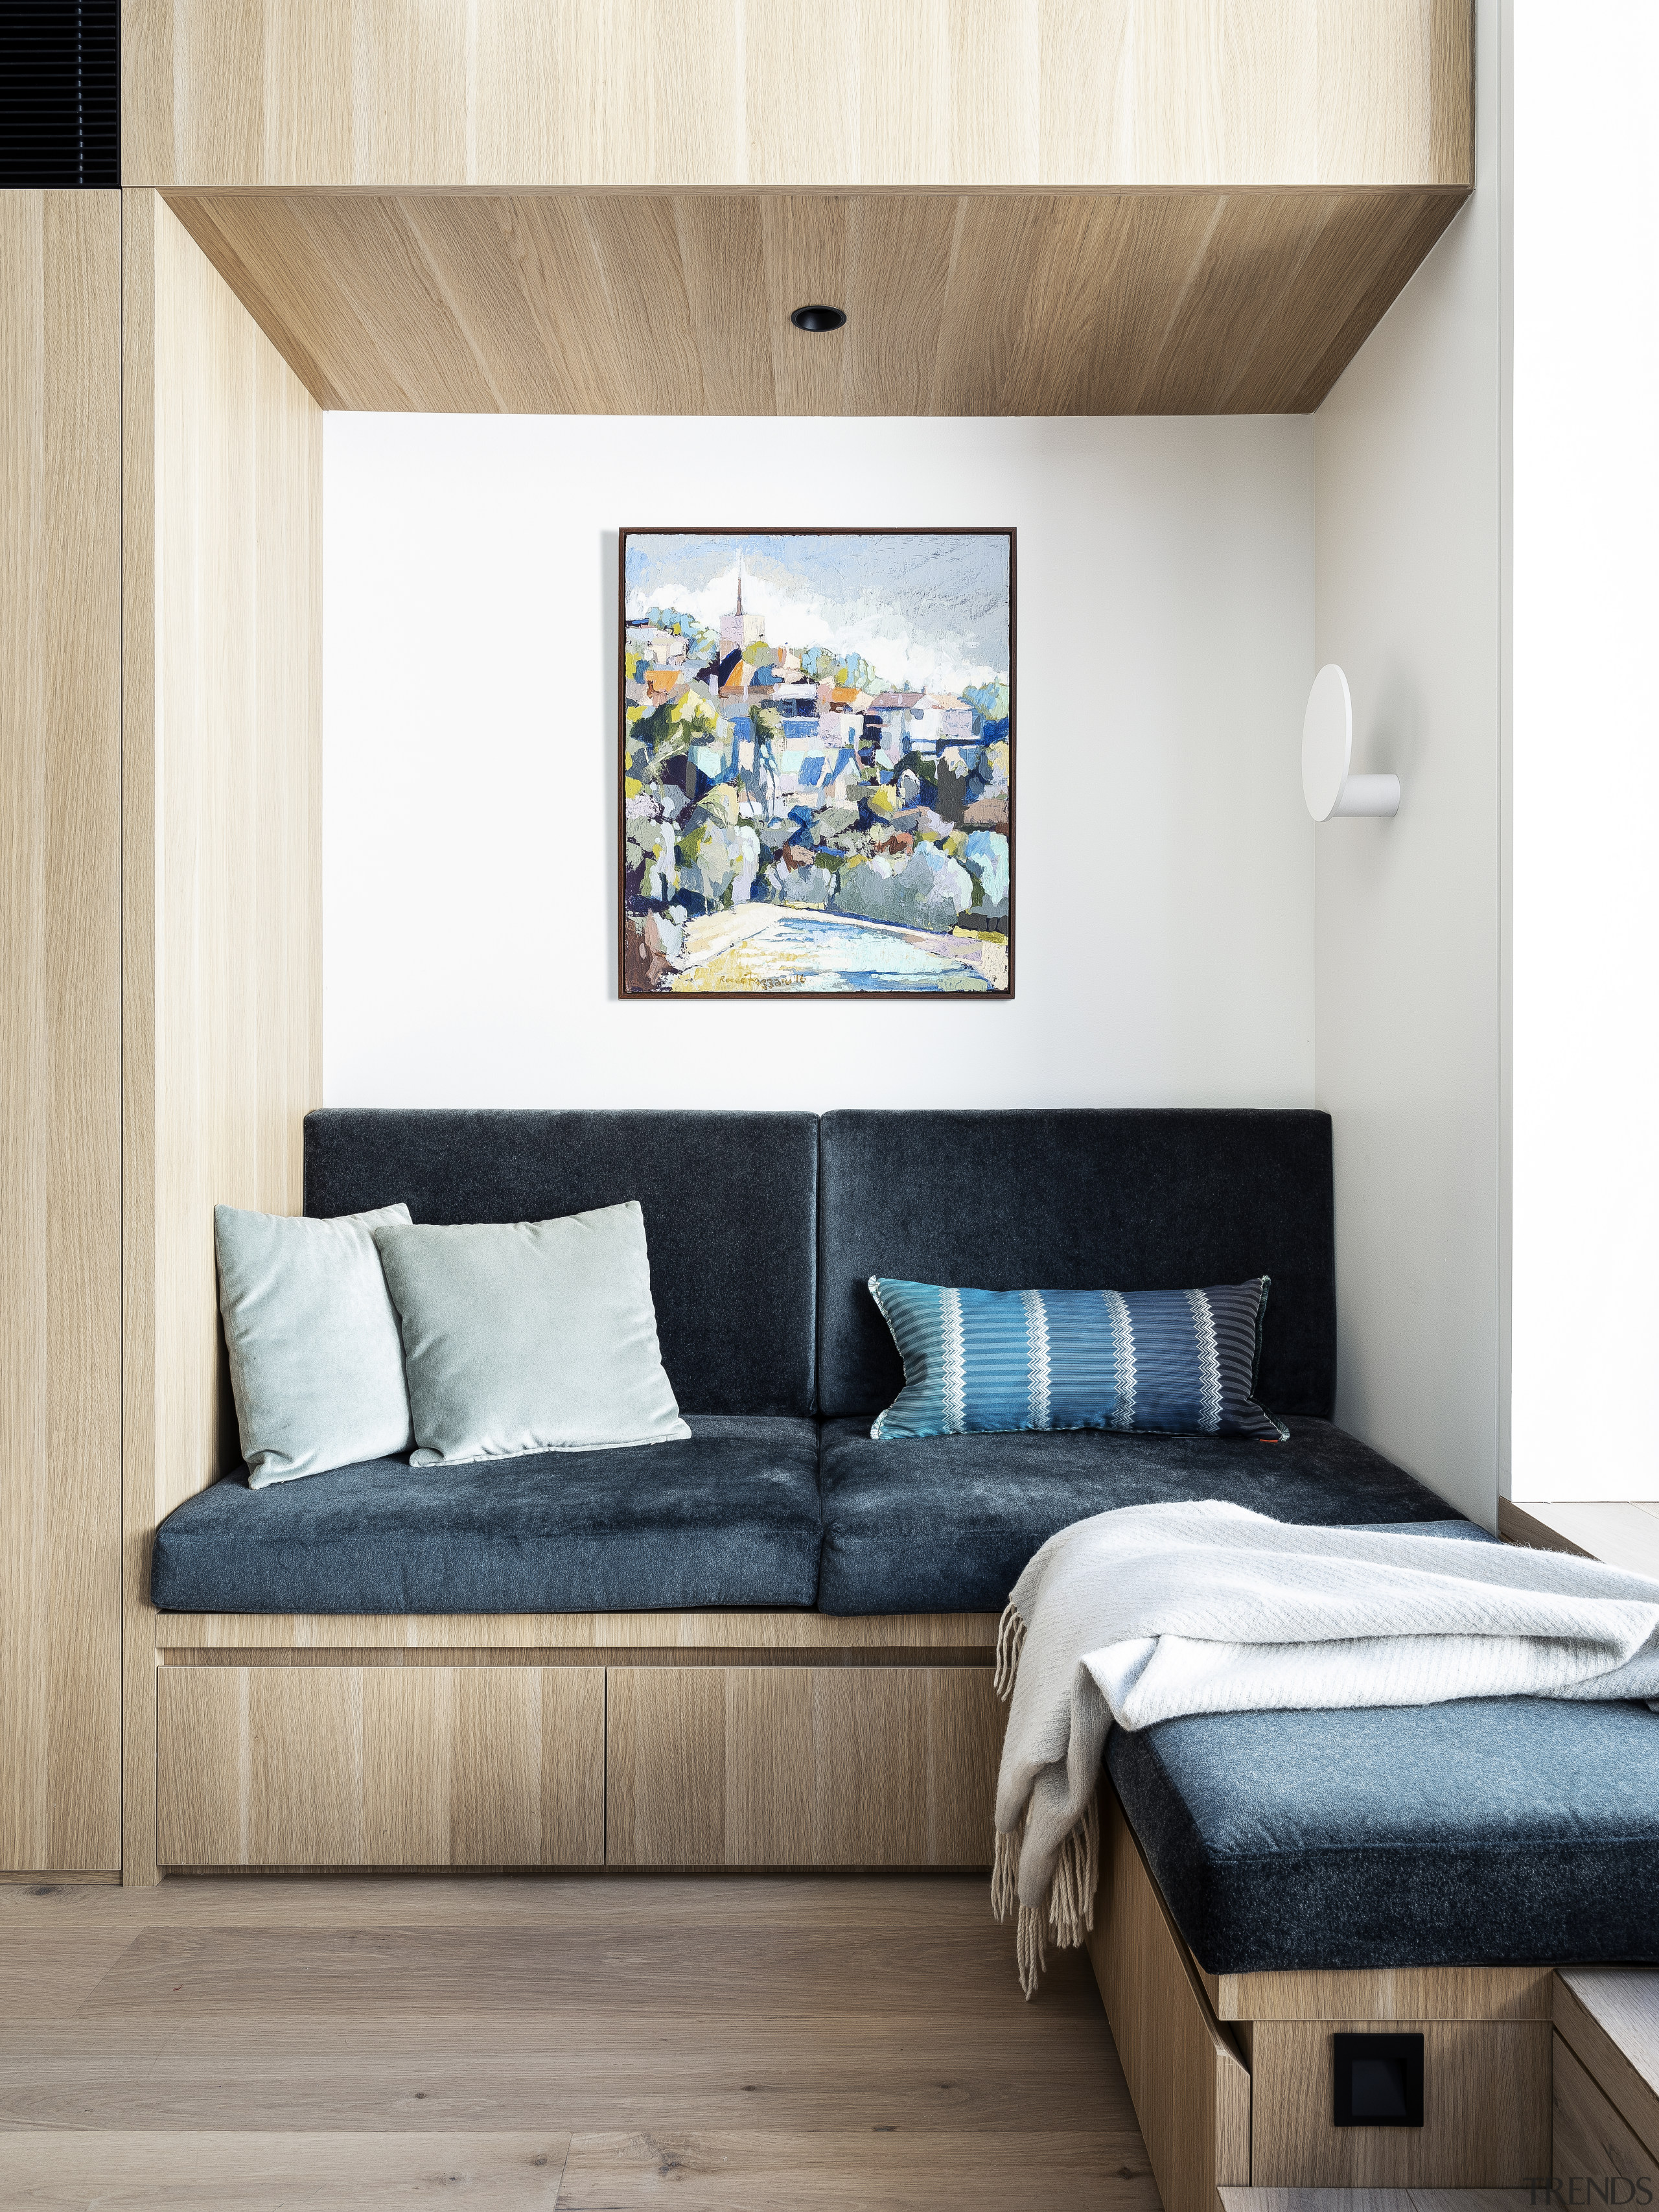 A wood veneer bulkhead helps give this reading